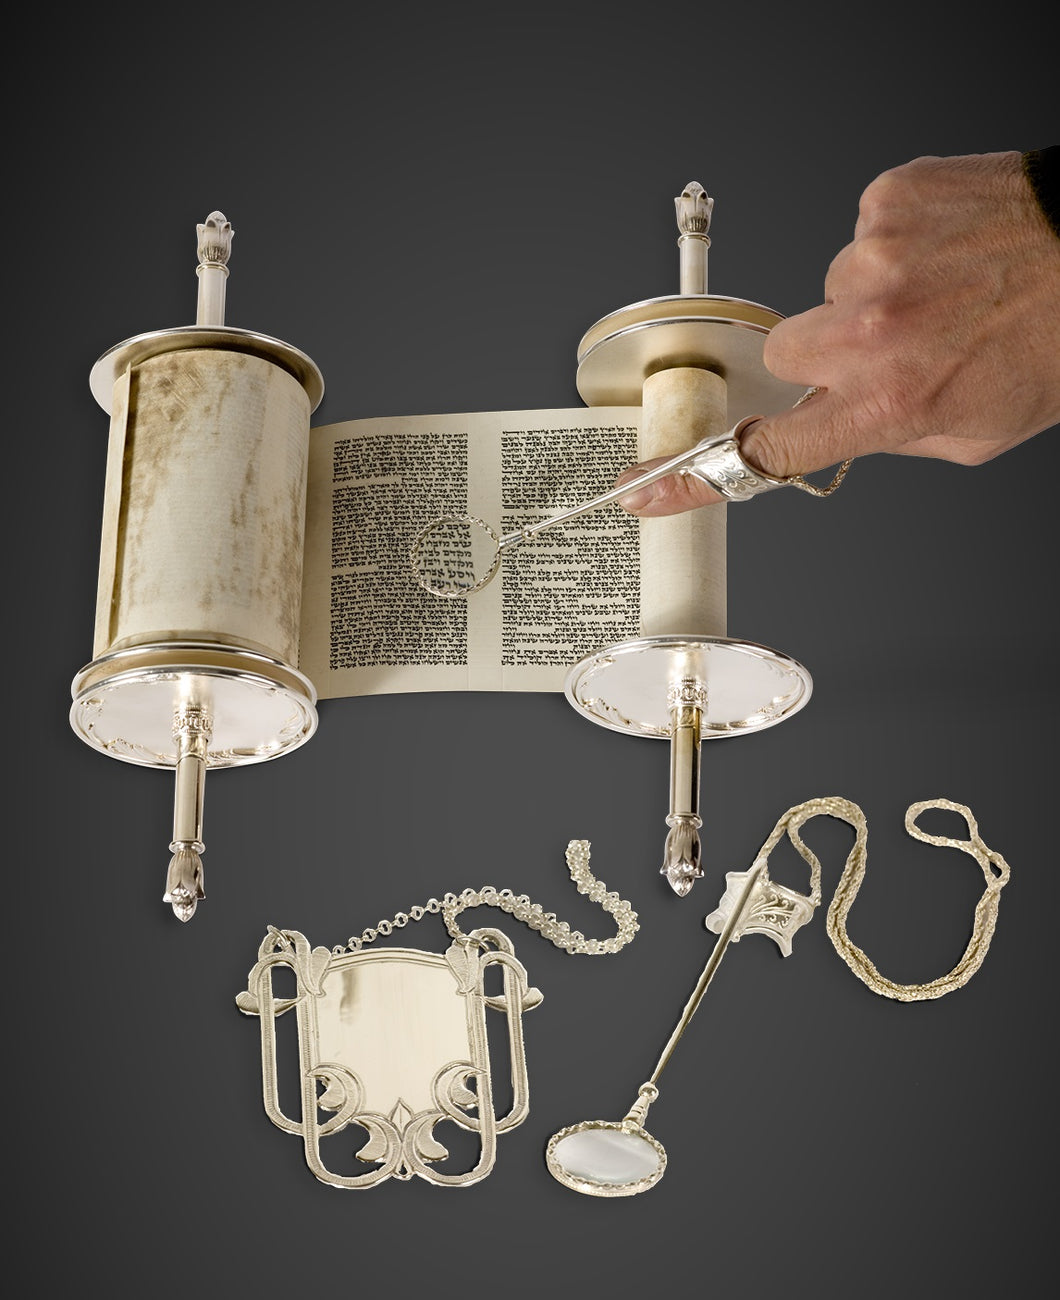 The Mini Torah Set